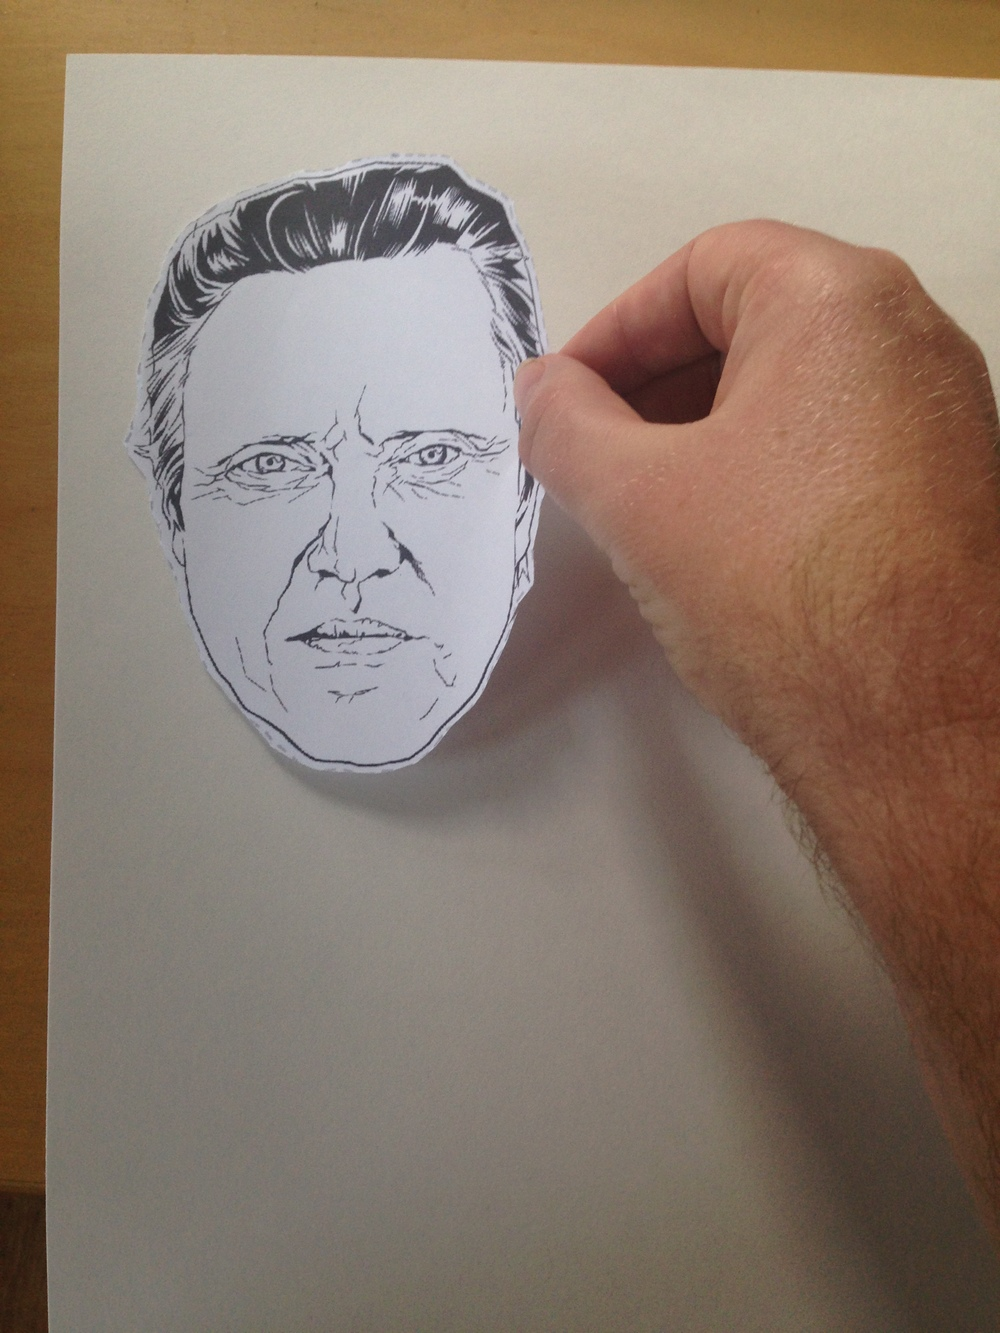 applying christopher walken mask to poster board